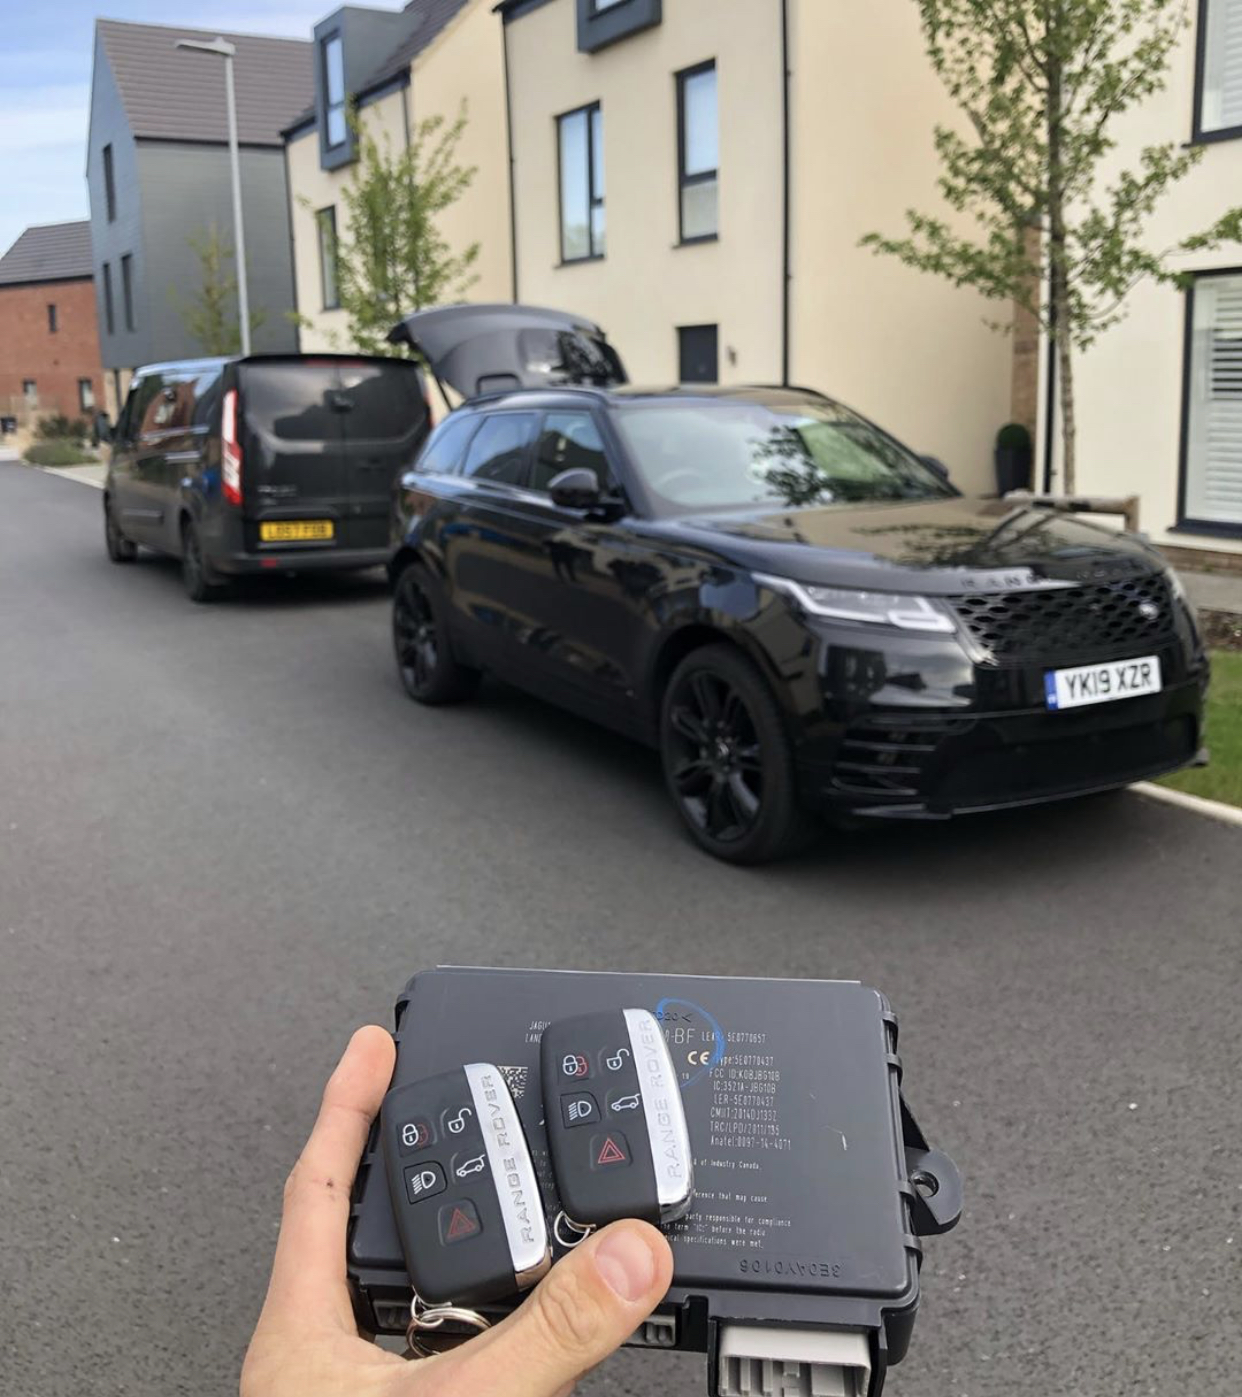 2019 Range Rover Velar Key Supplied And Programmed